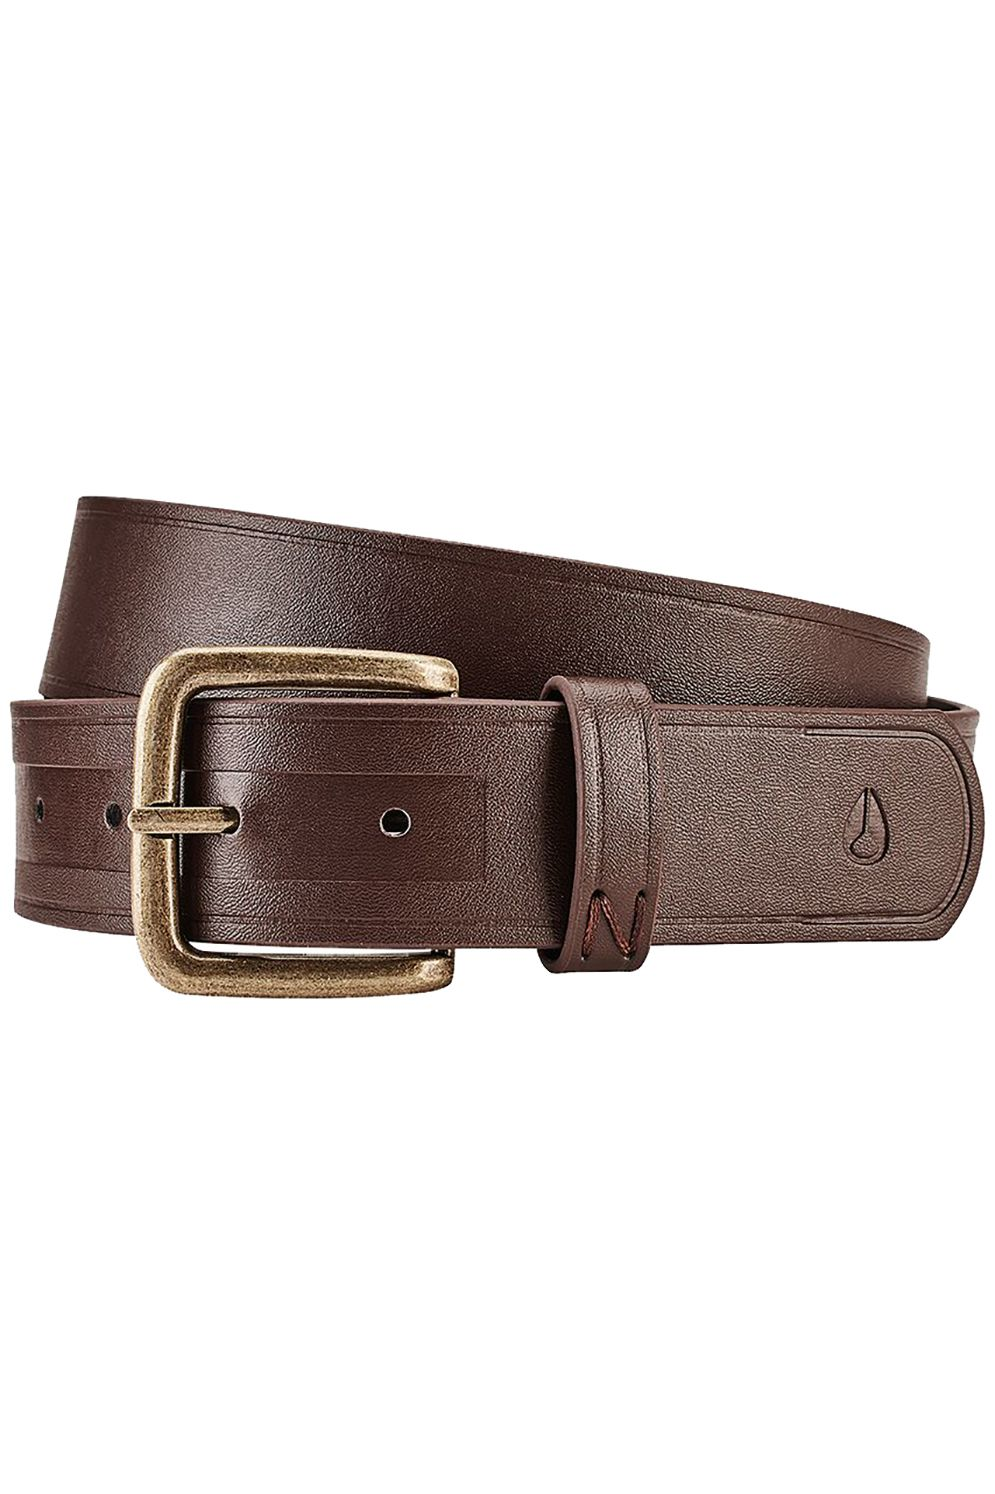 Cinto Nixon DNA VEGAN Brown/Gold